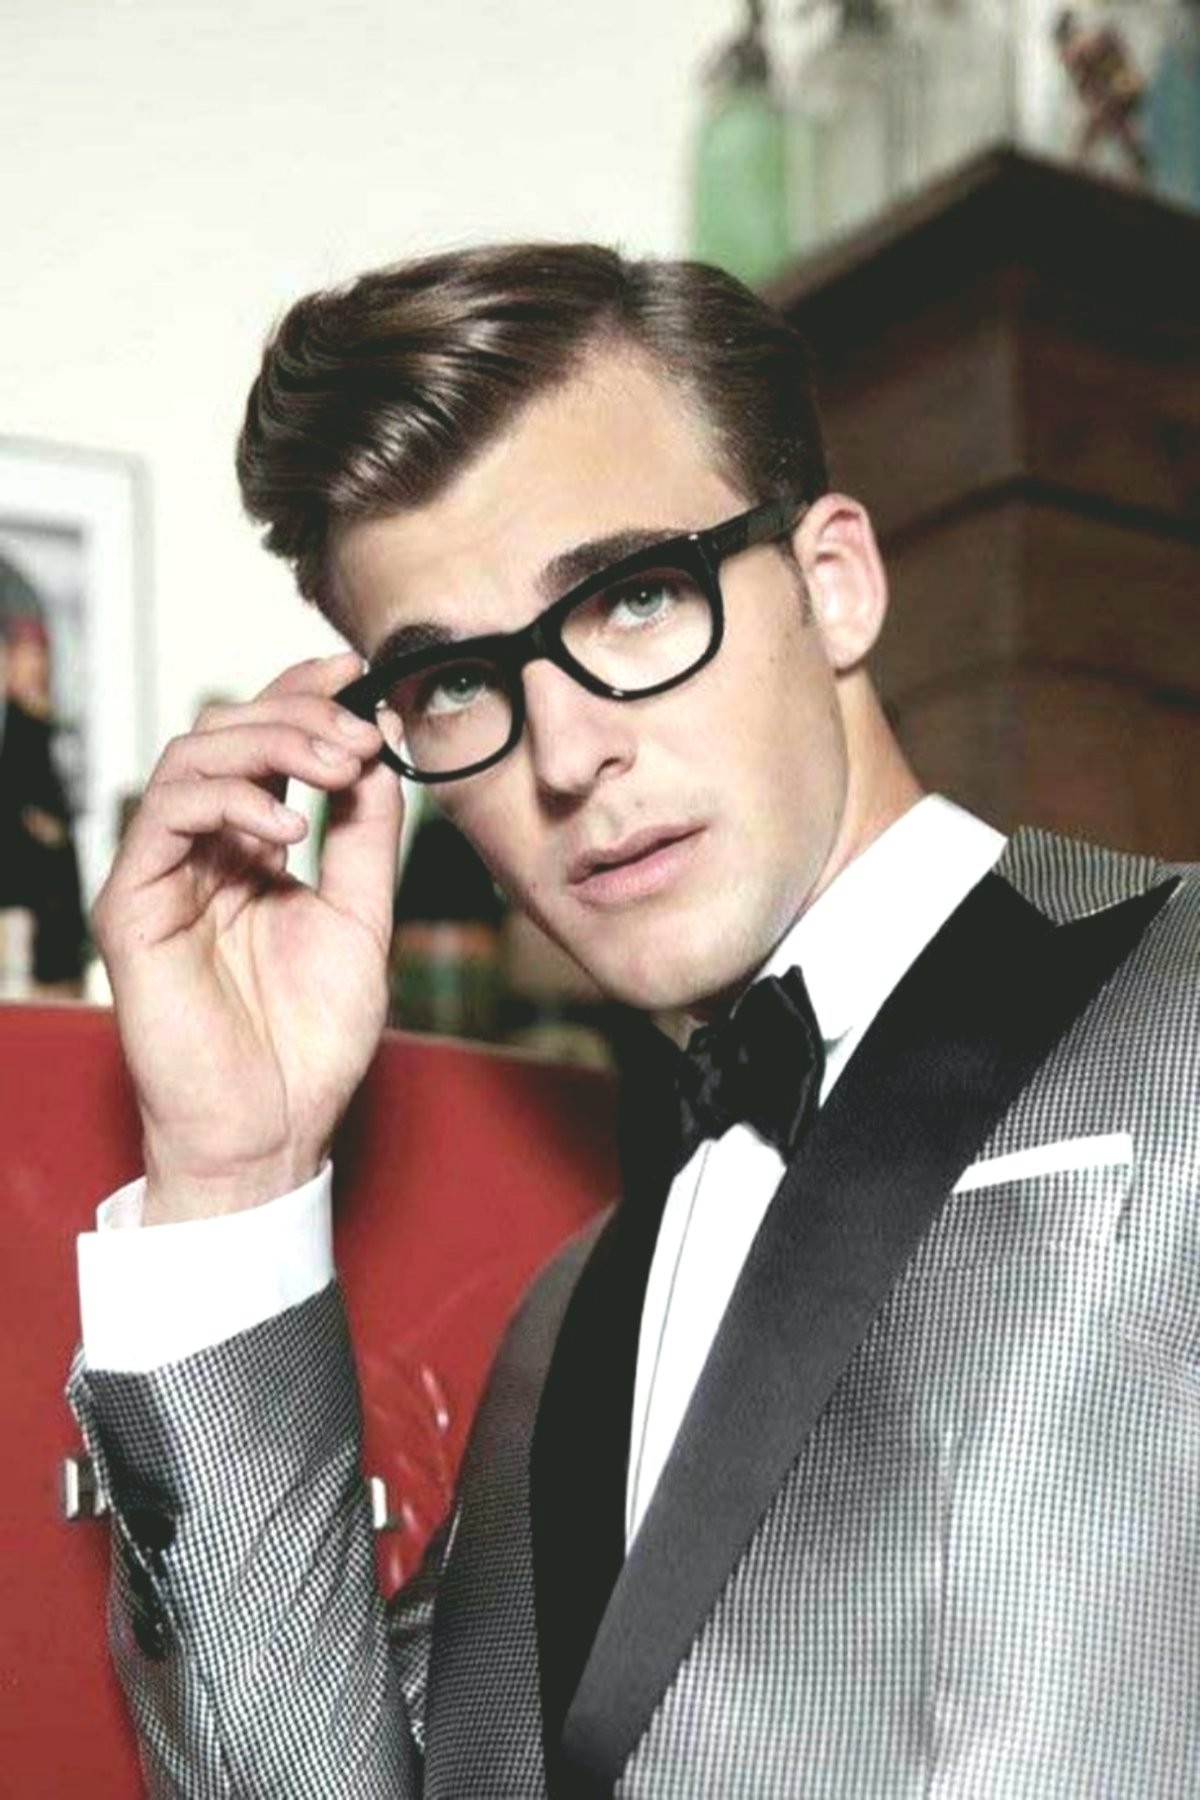 modern curls hairstyle men model Amazing curls hairstyle men concepts